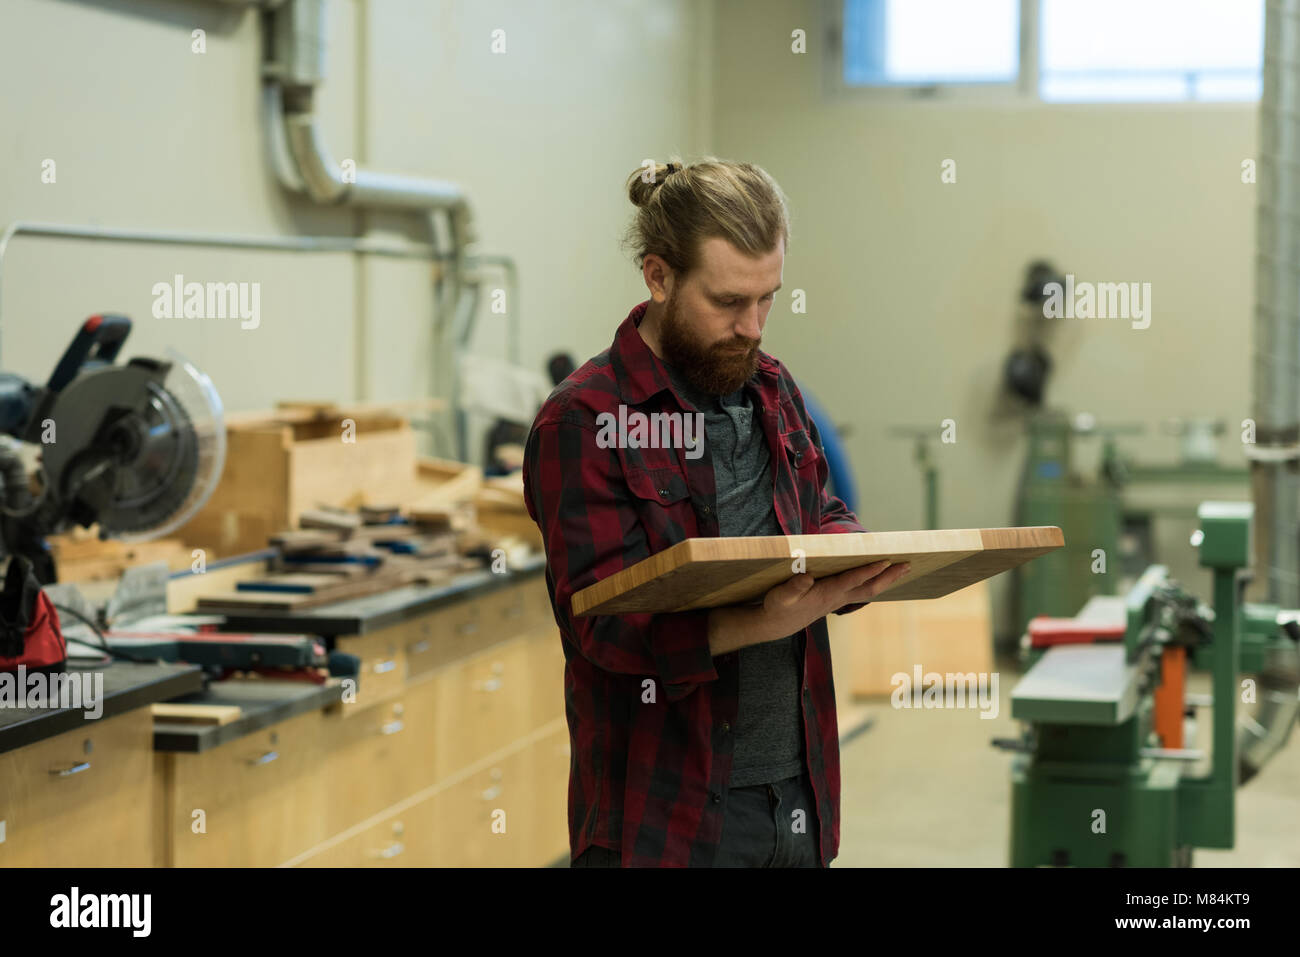 Male carpenter examining a wood furniture at workshop - Stock Image